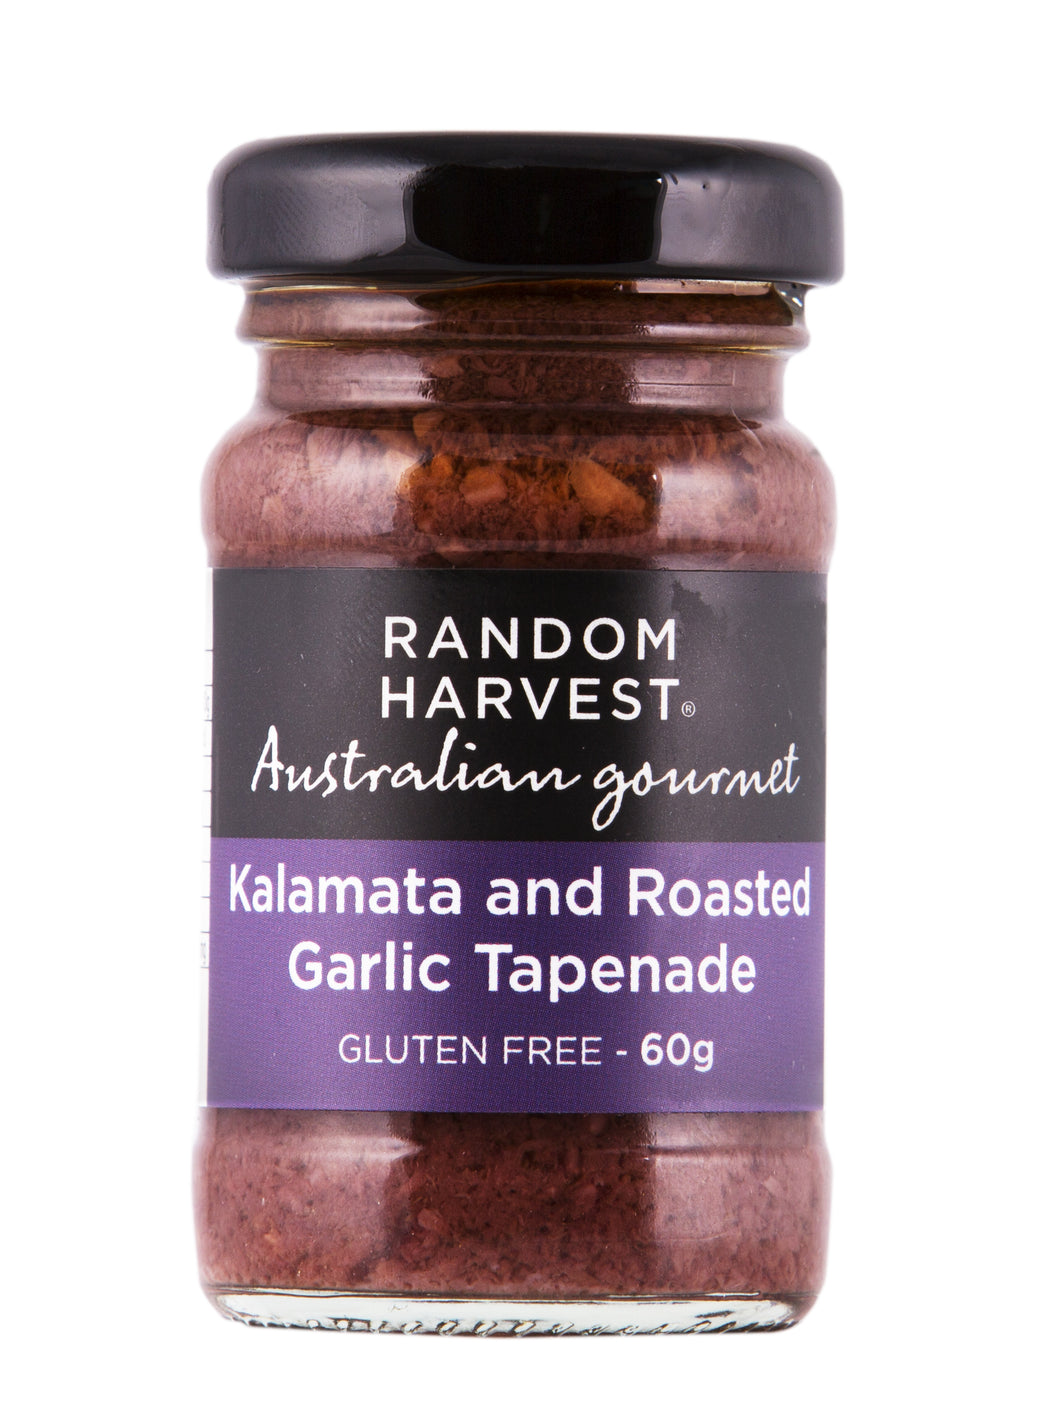 Kalamata andRoasted Garlic Tapenade 60g